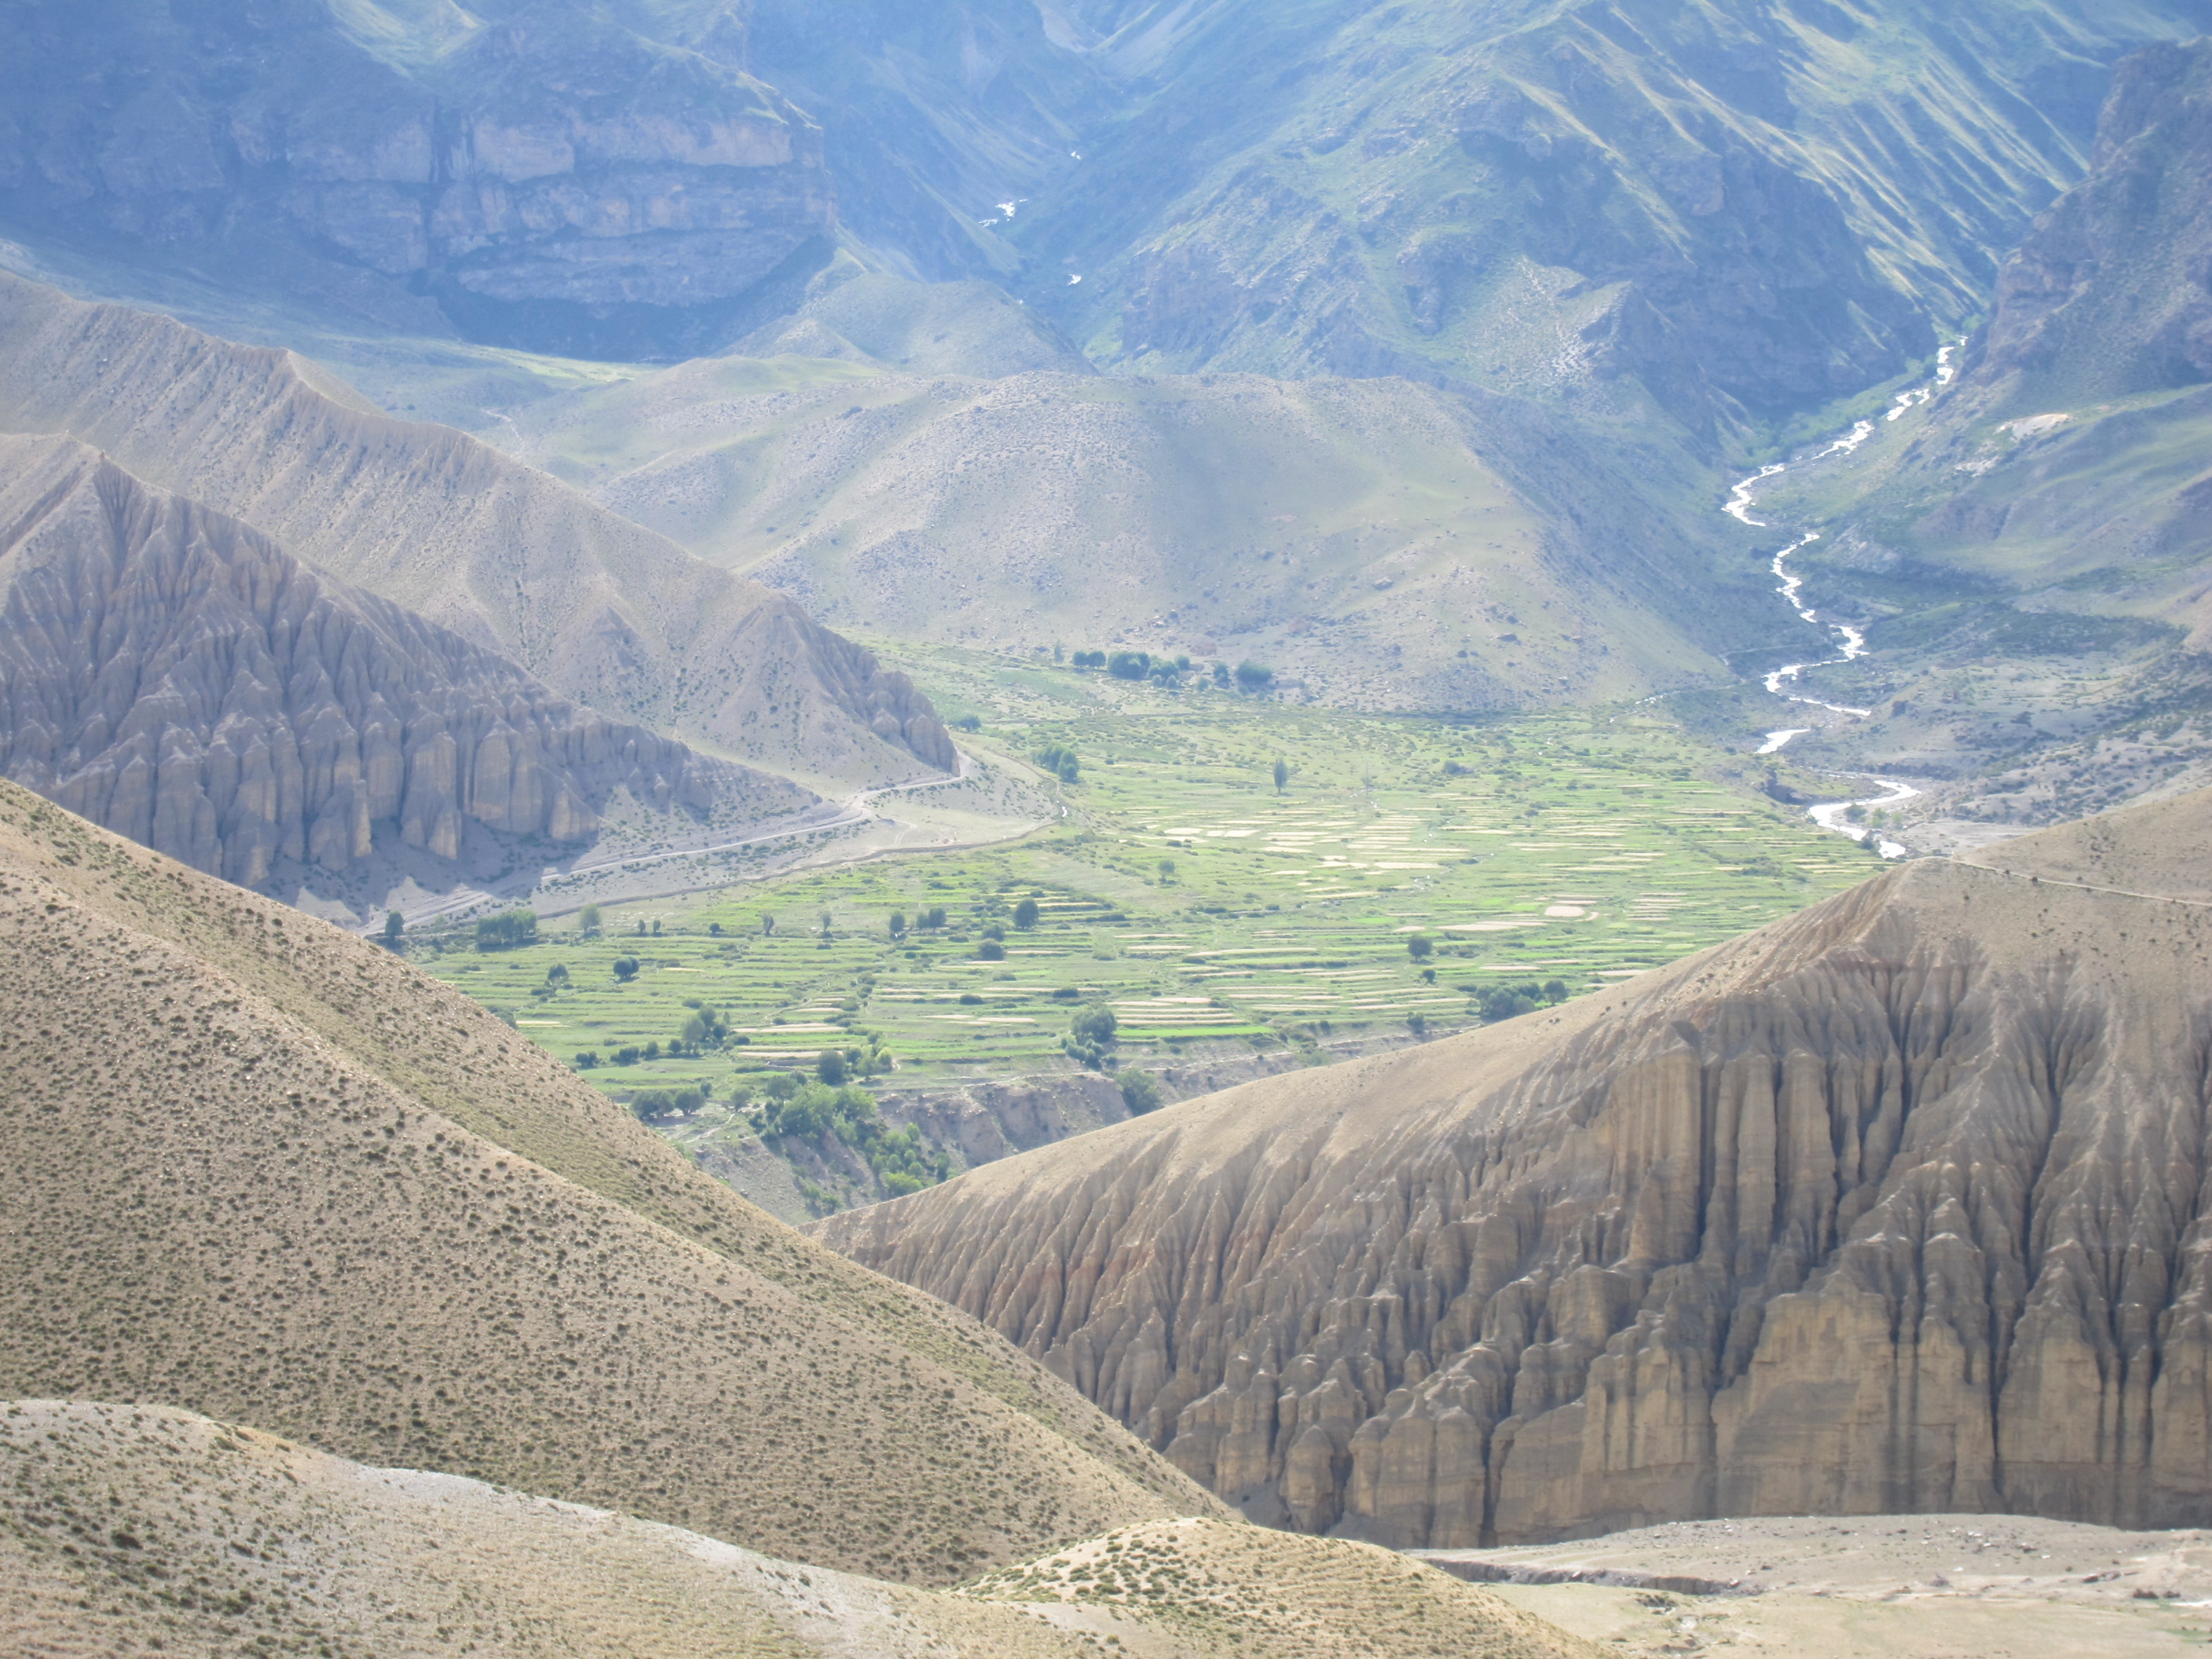 trekking to upper mustang